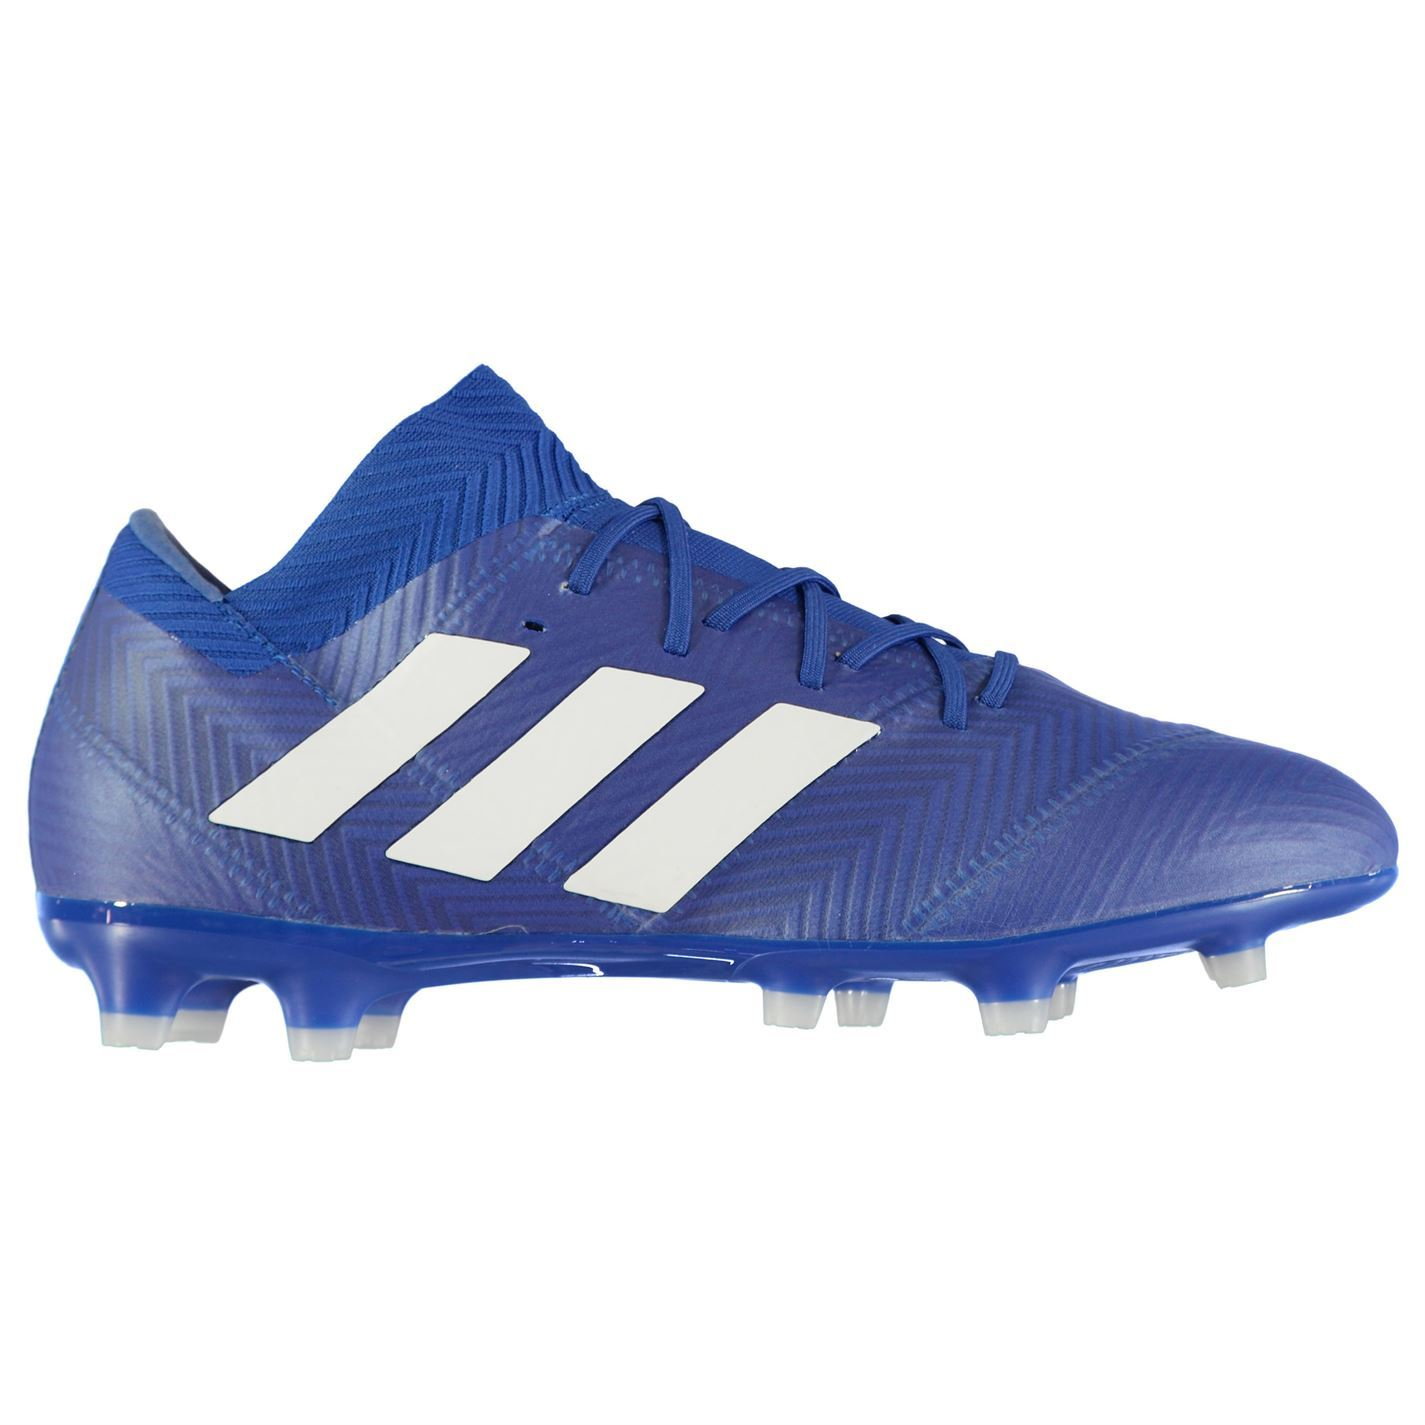 6bd35356d ... adidas Nemeziz 18.2 FG Firm Ground Football Boots Mens Soccer Shoes  Cleats